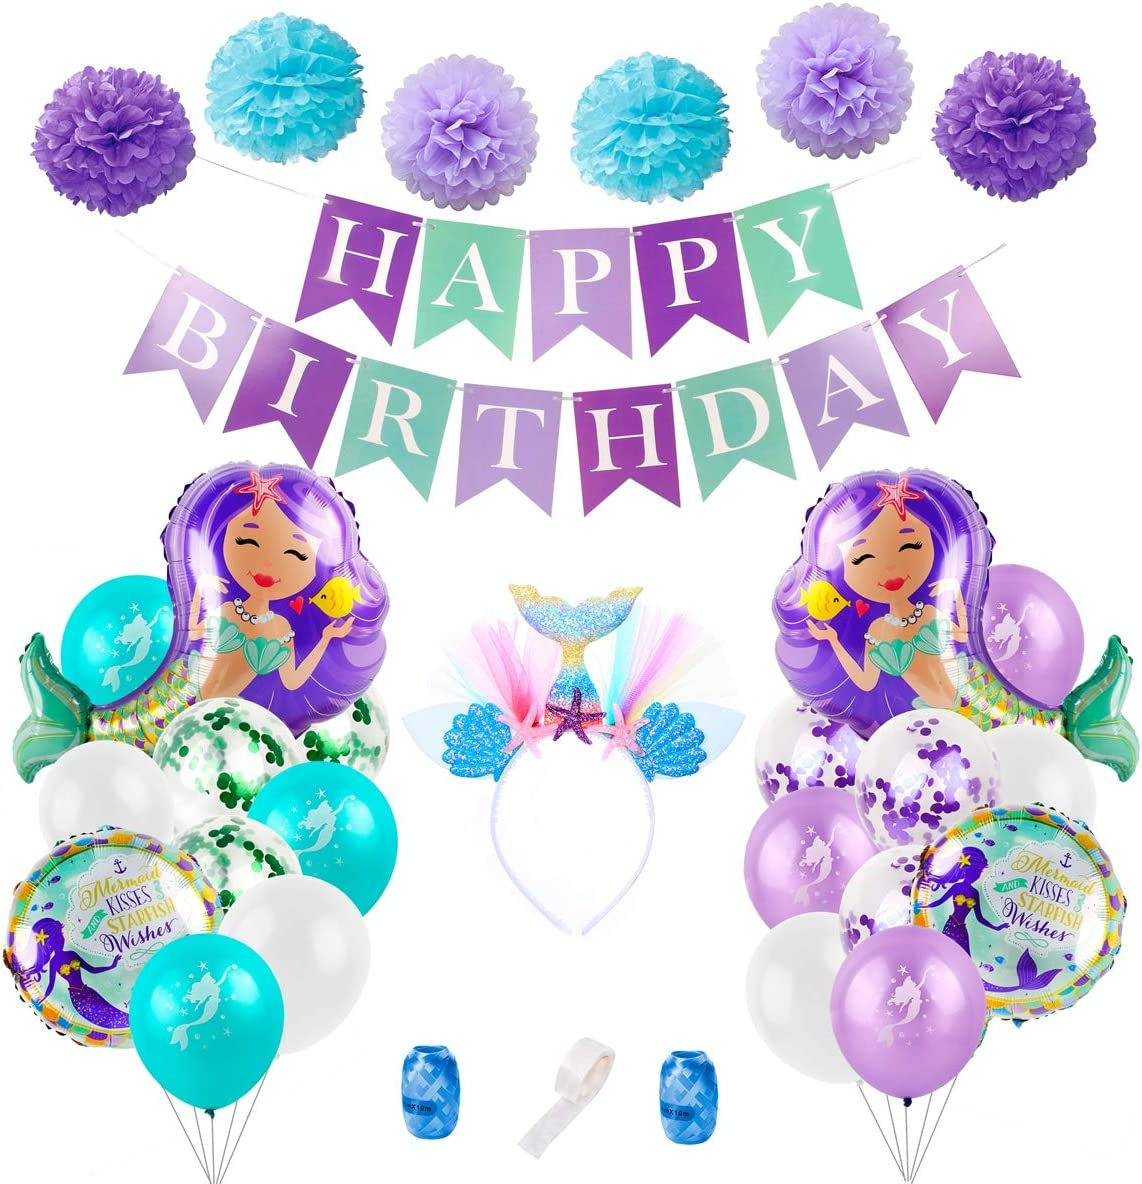 Pom Poms and Headband Perfect for Little Mermaid Theme Party Baby Shower Girl 1st 2nd 3rd Birthday Mermaid Balloons Birthday Party Decorations 31 Pcs Mermaid Party Supplies Including Mermaid Balloons Birthday Banner